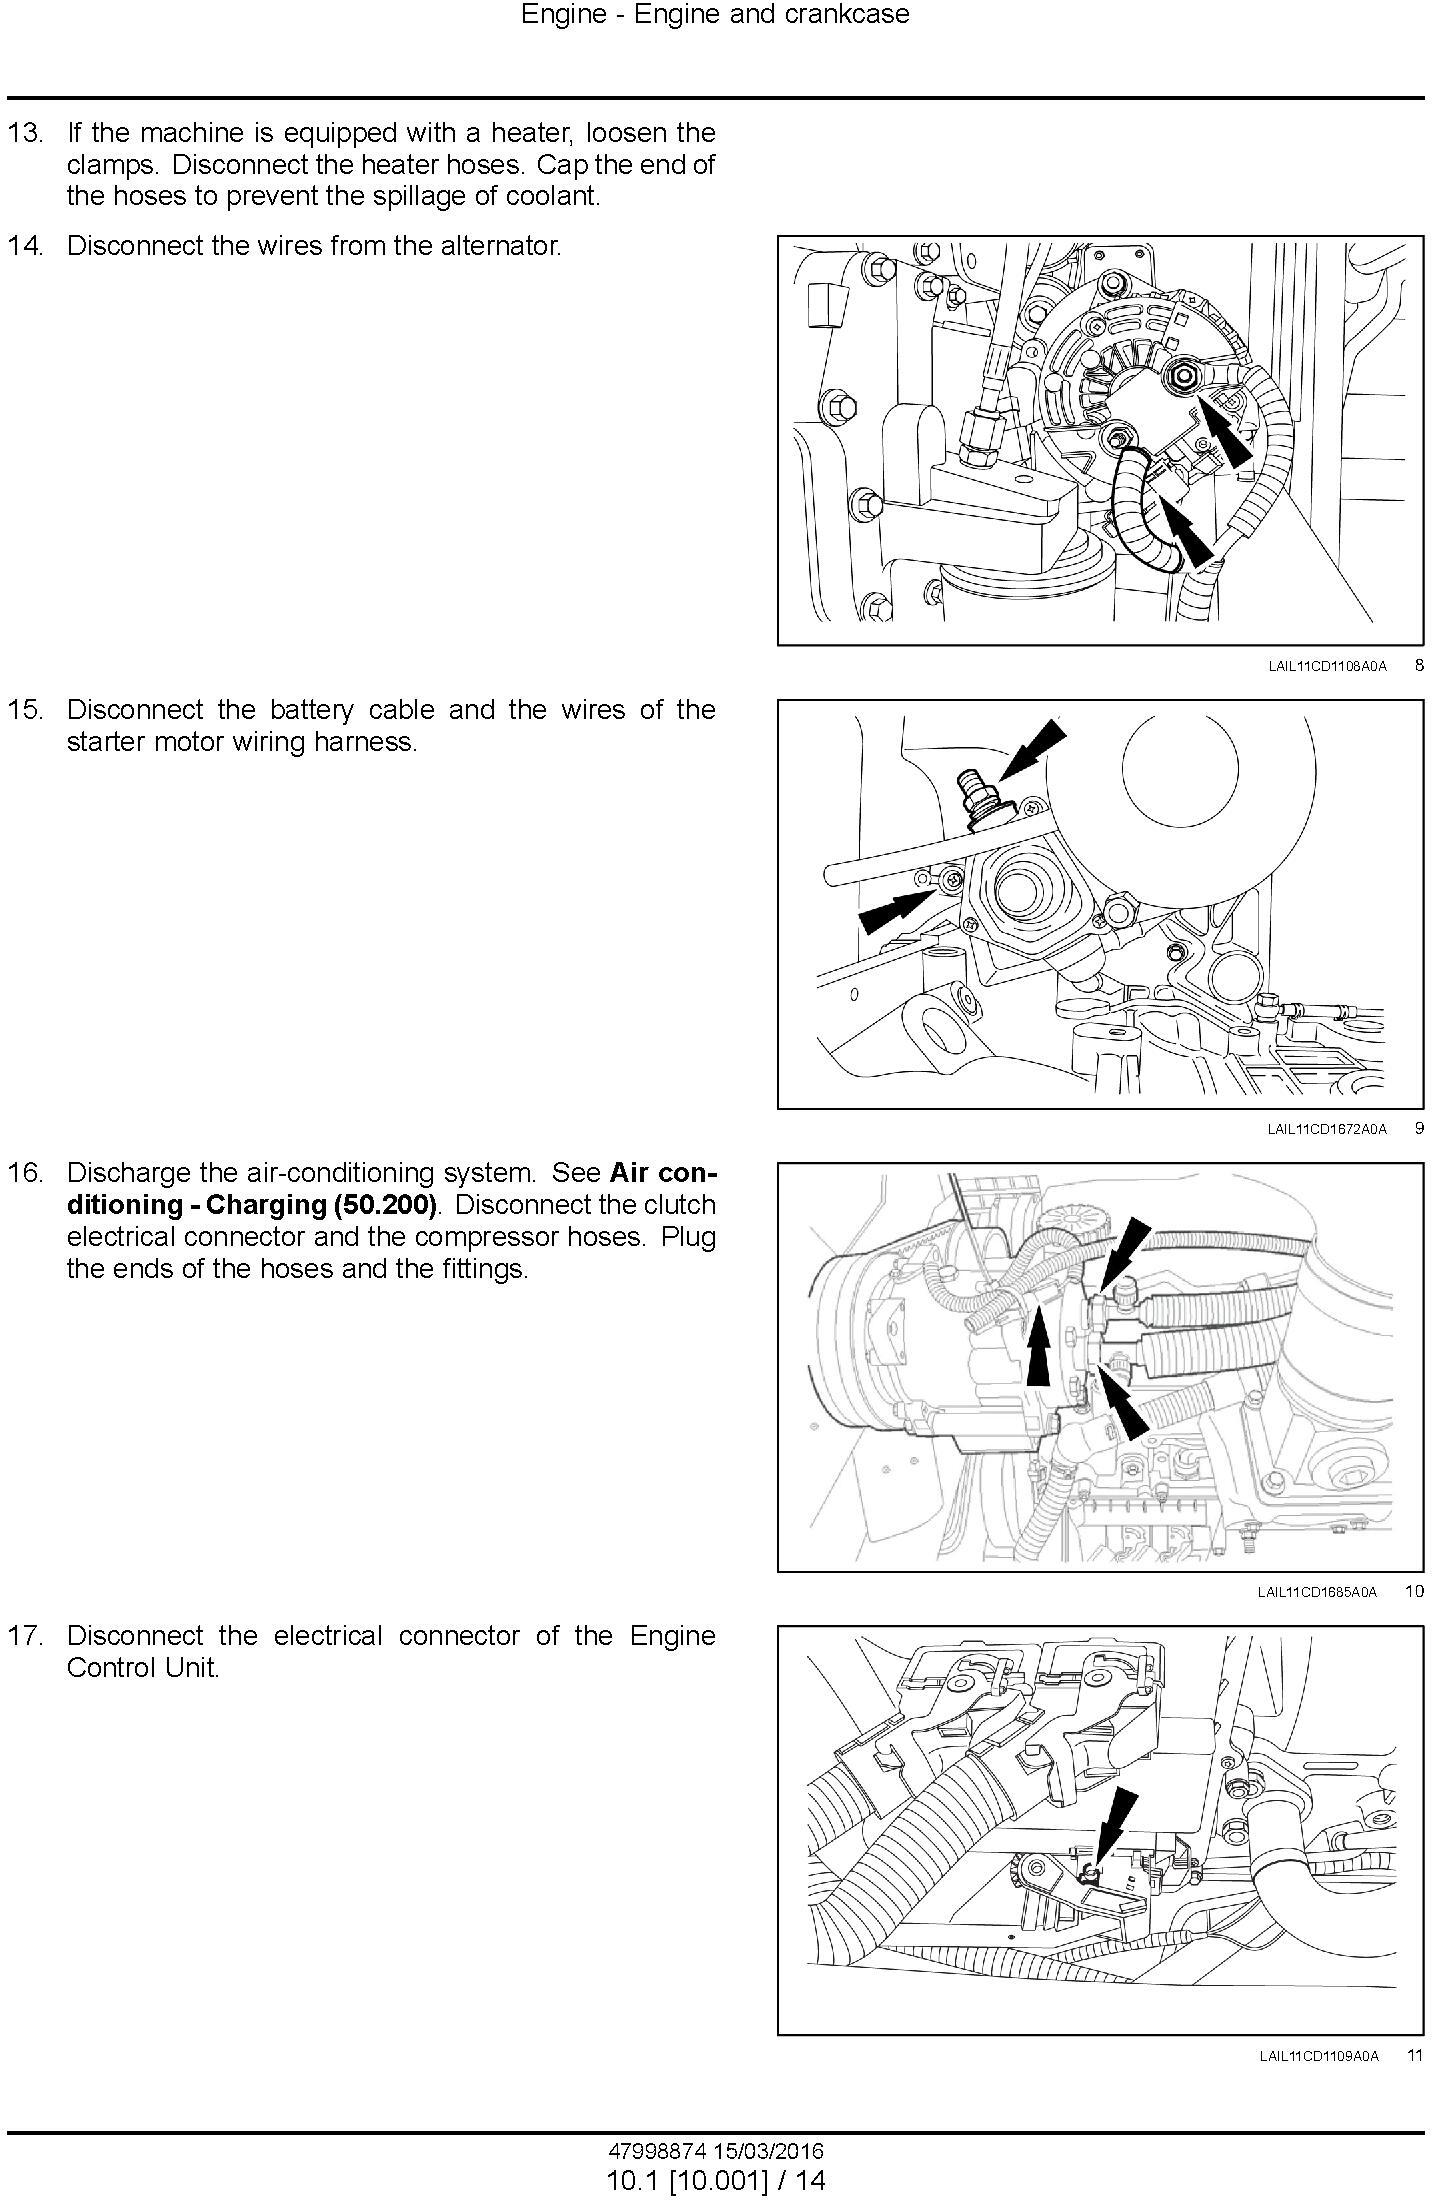 New Holland , Case 1150L Crawler dozer Service Manual - 2